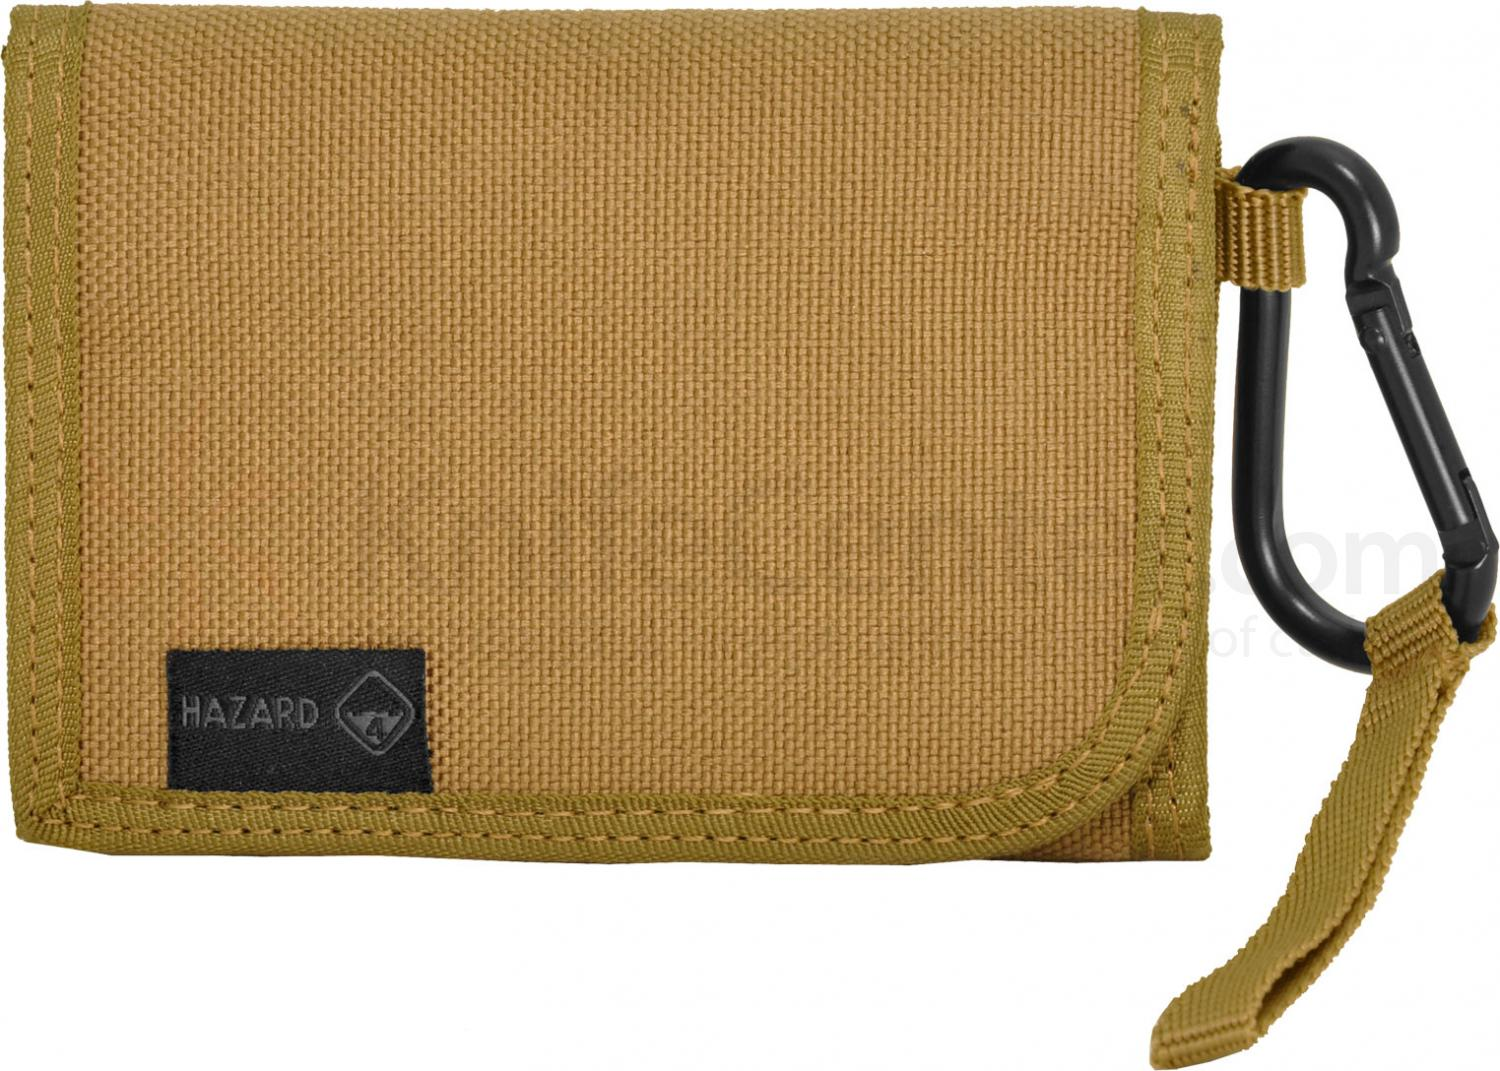 Hazard 4 Mil-Wafer Slim Biner Wallet, Coyote (1000D Cordura)